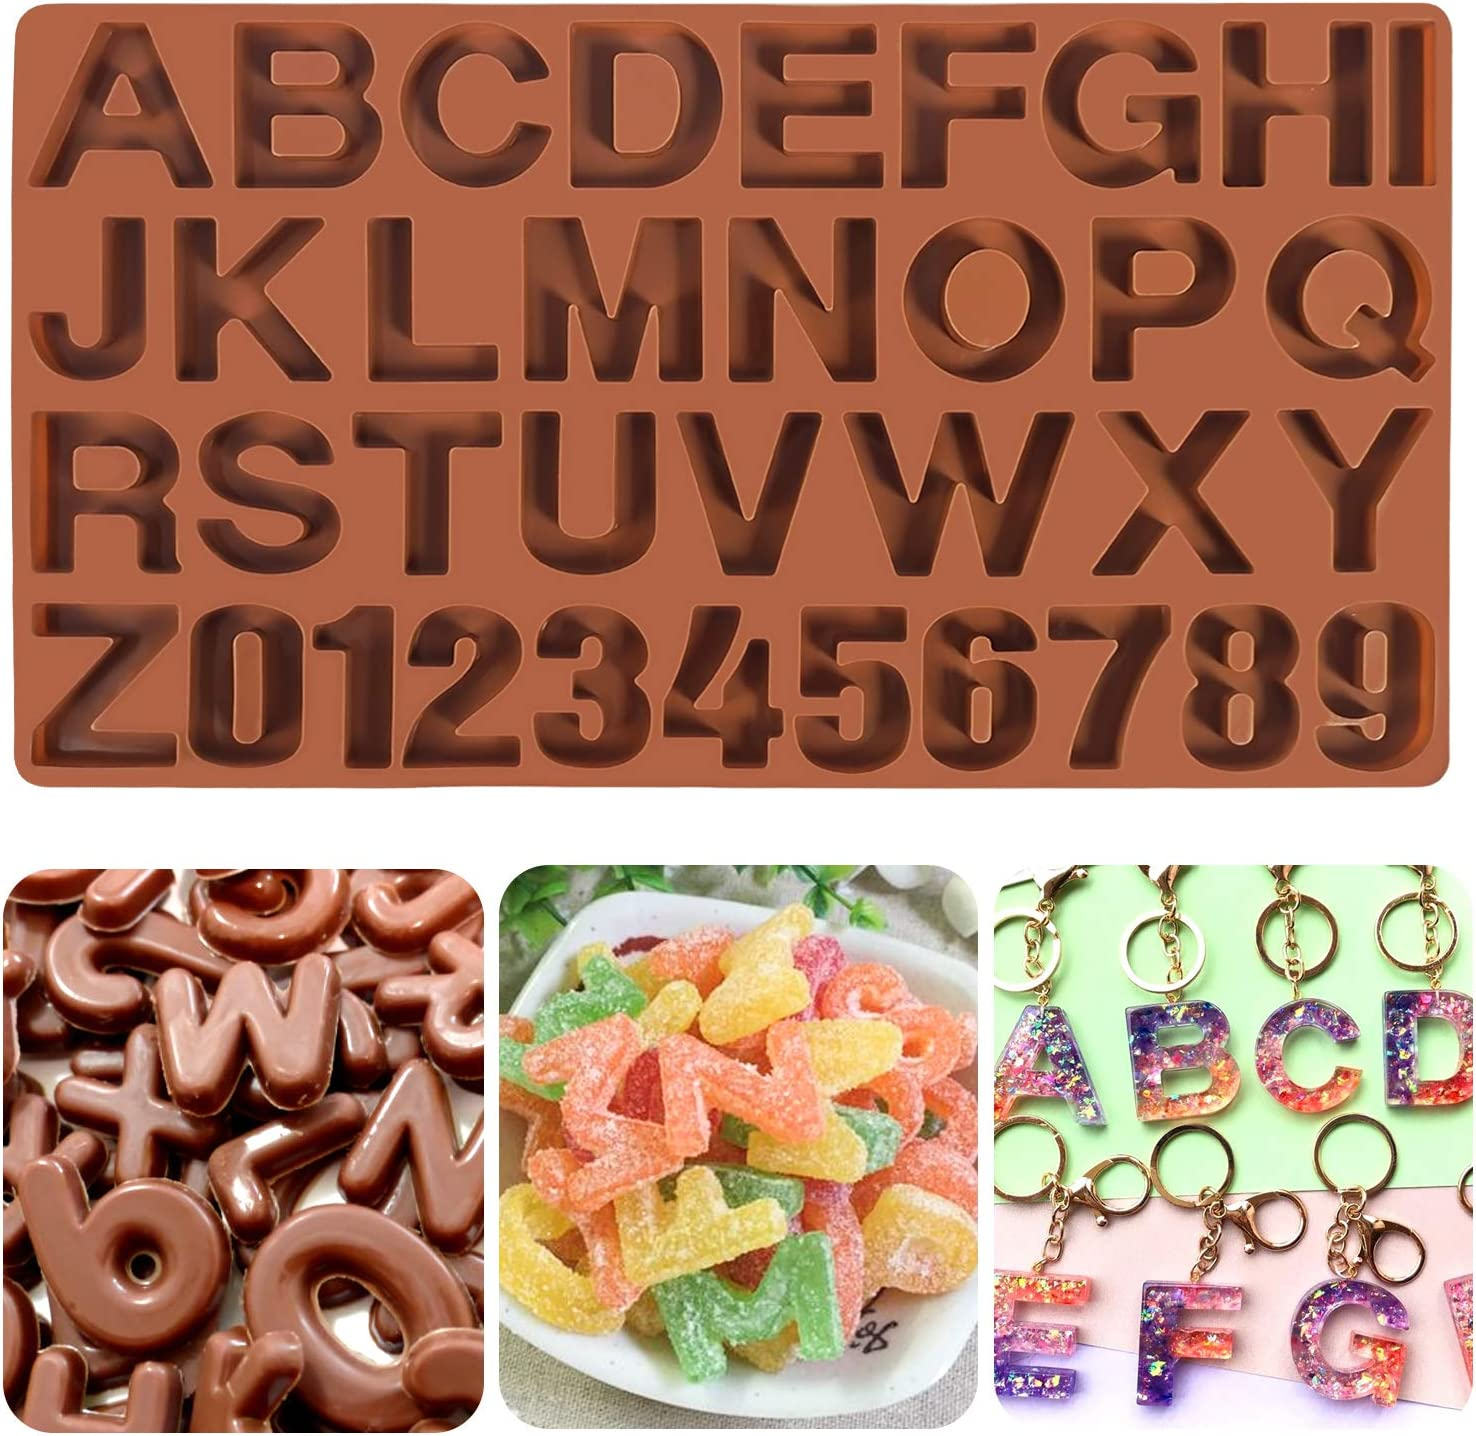 Mity rain Large Letter Silicone mold for Chocolate, Alphabet Number Candy Tray Mold Cake Baking Pan for DIY Cookies, Crayon, Valentine's Day Cake Decorating